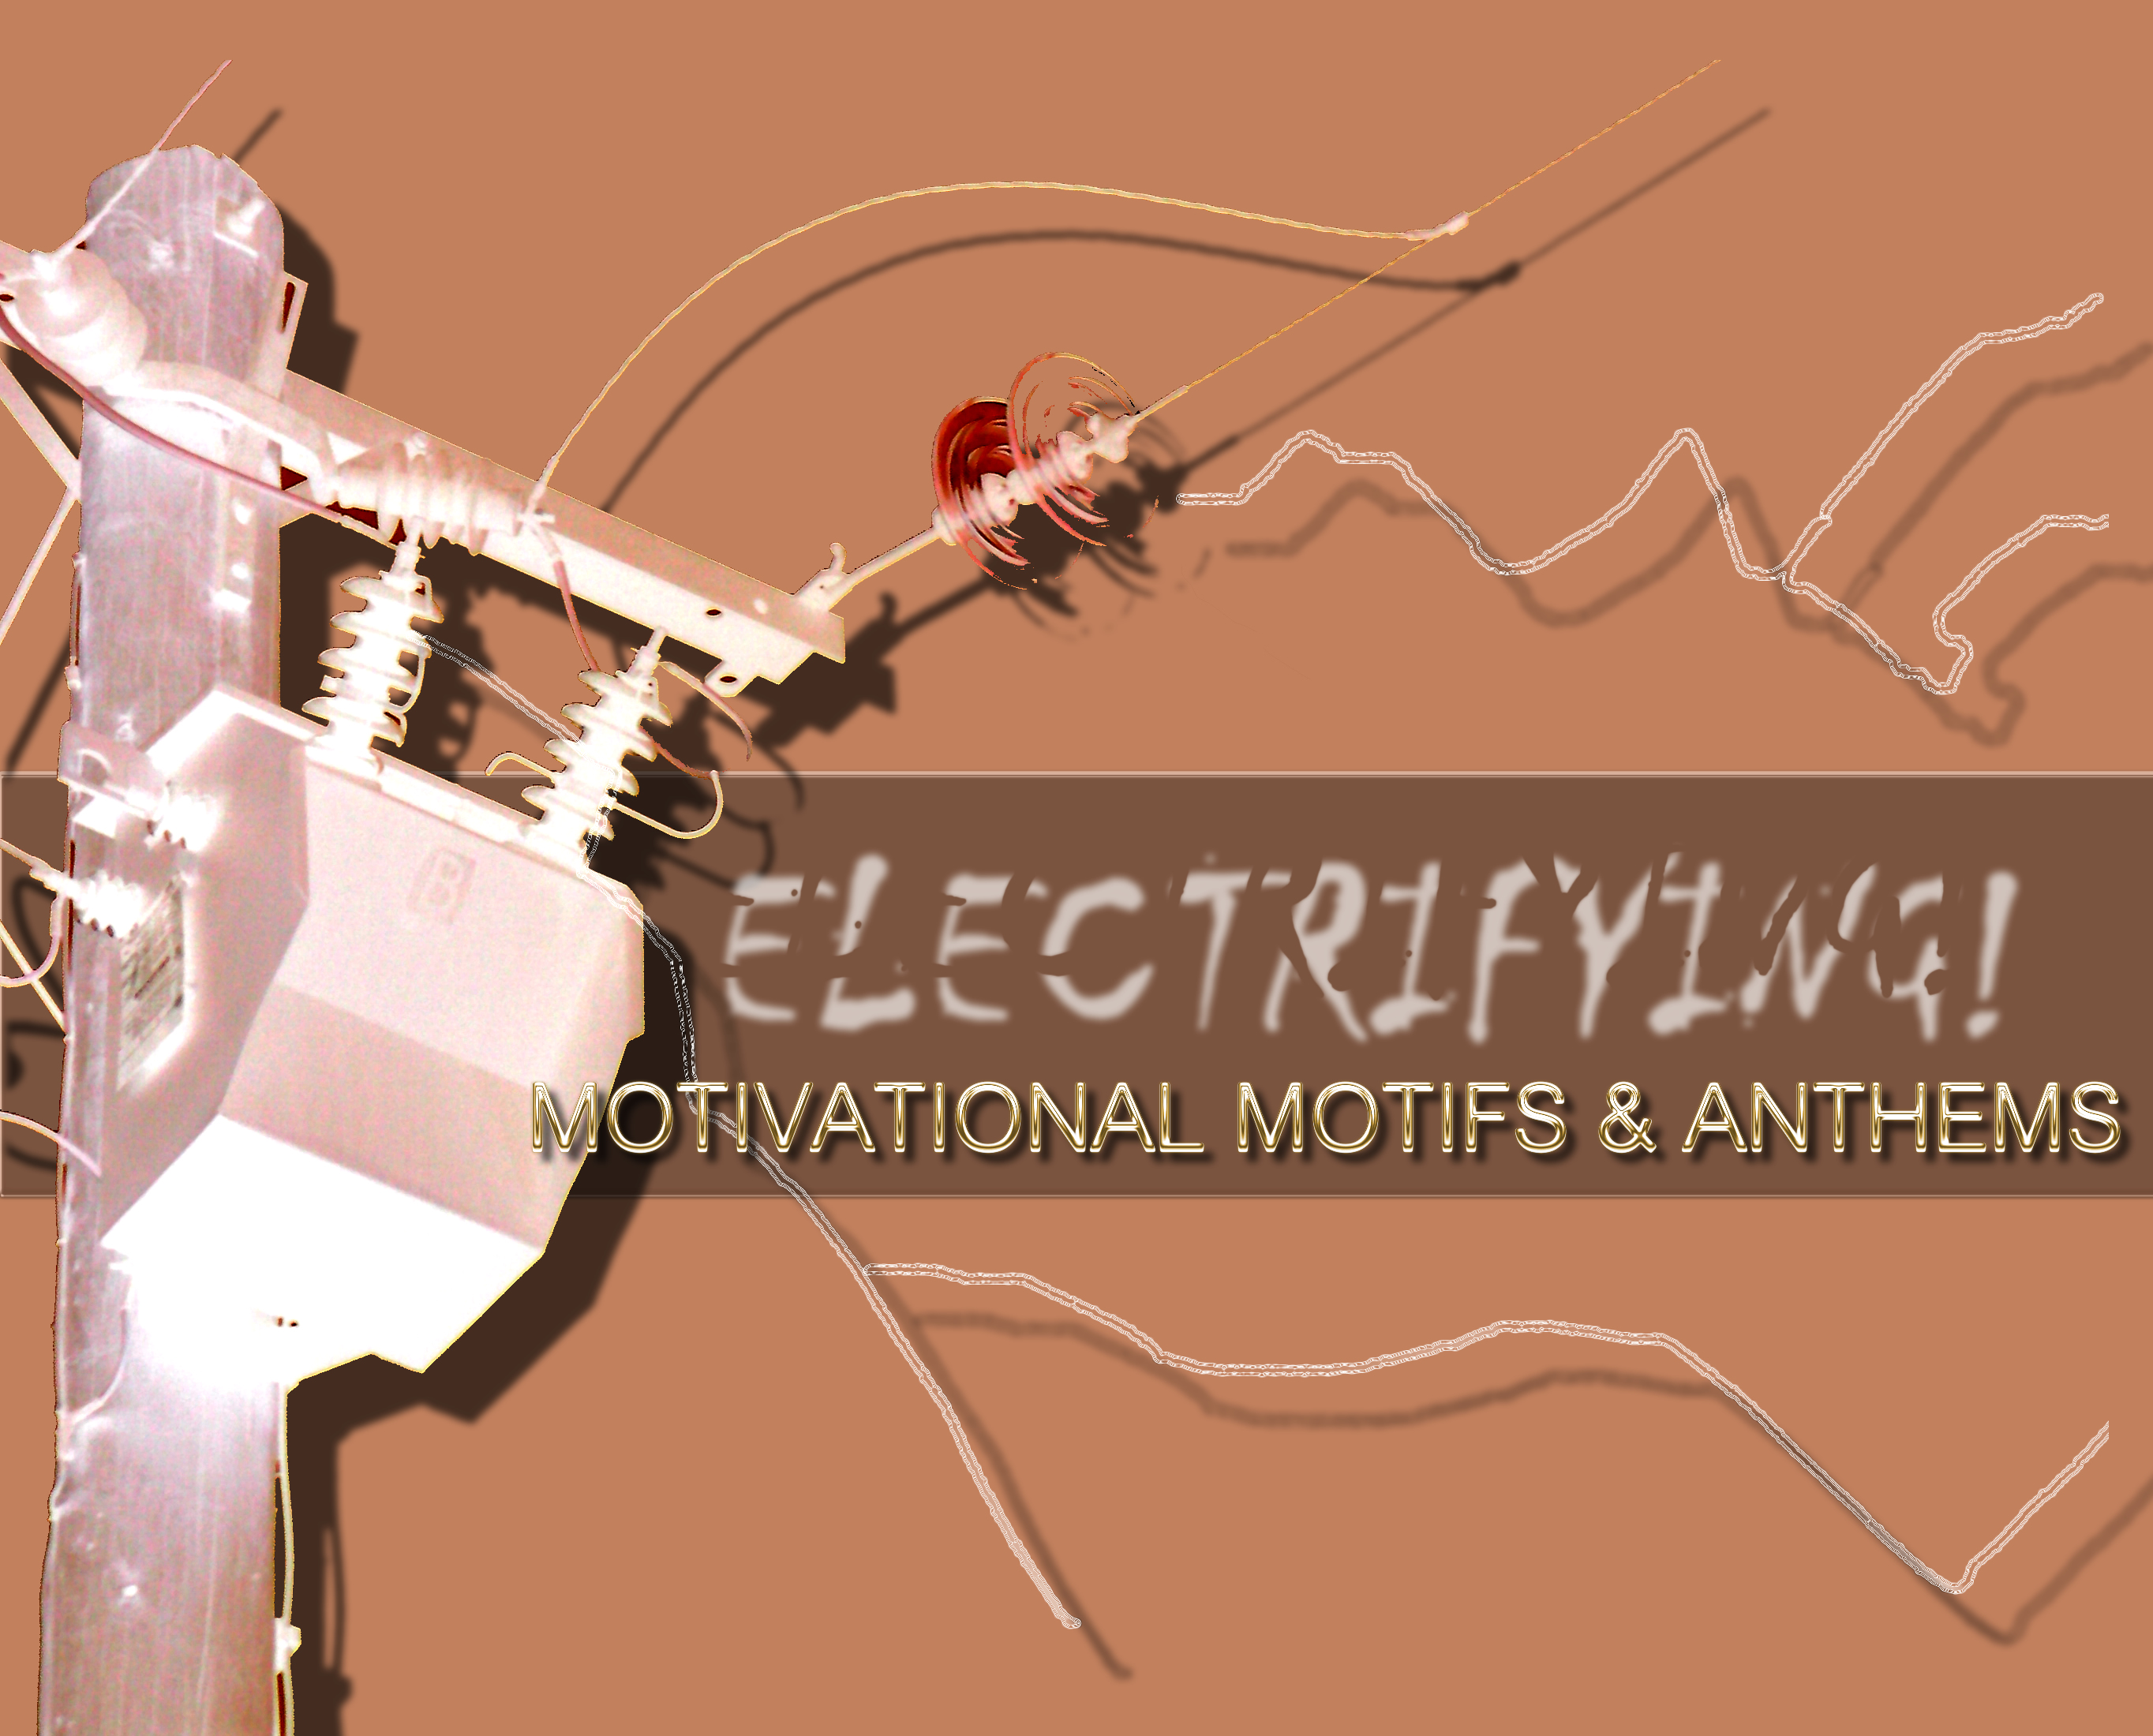 Corporate - Motivational Motifs & Anthems ELECTRIFYING!